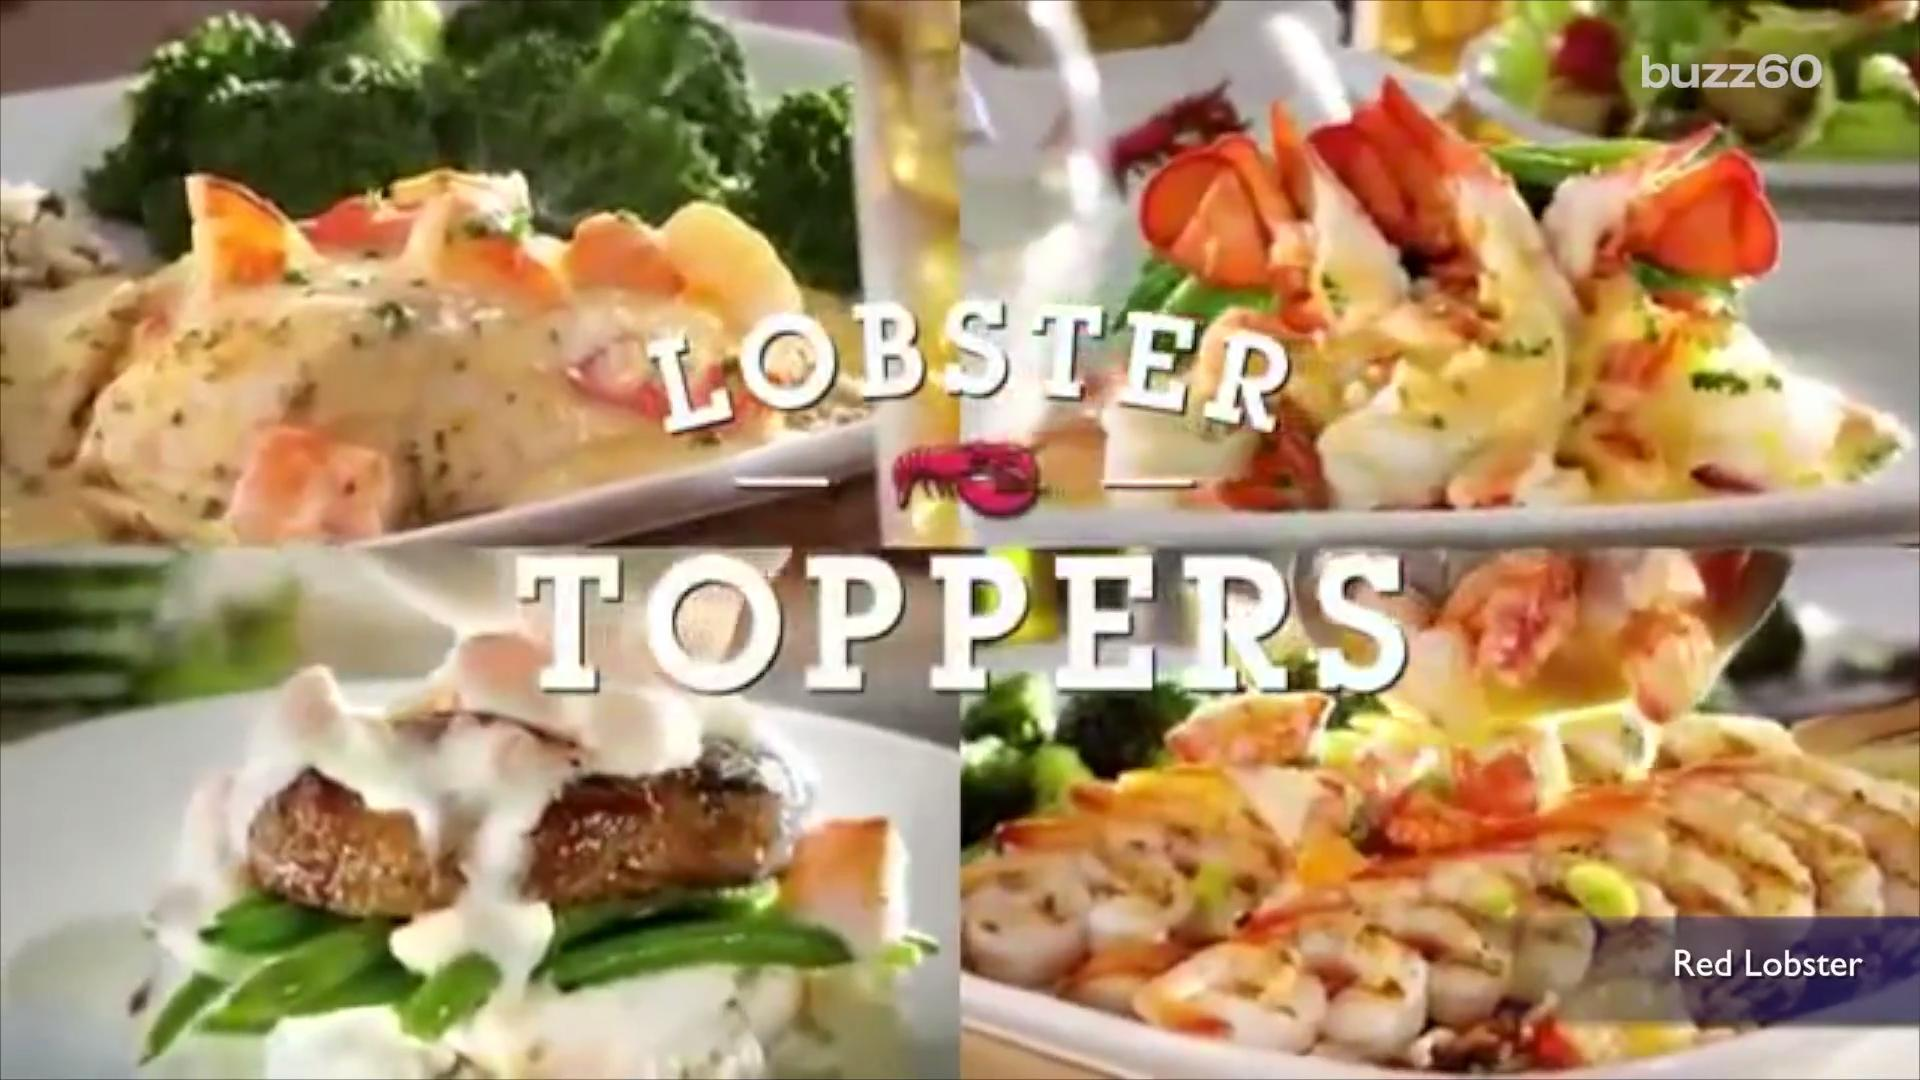 Where Does Red Lobster Get Its Lobster From?